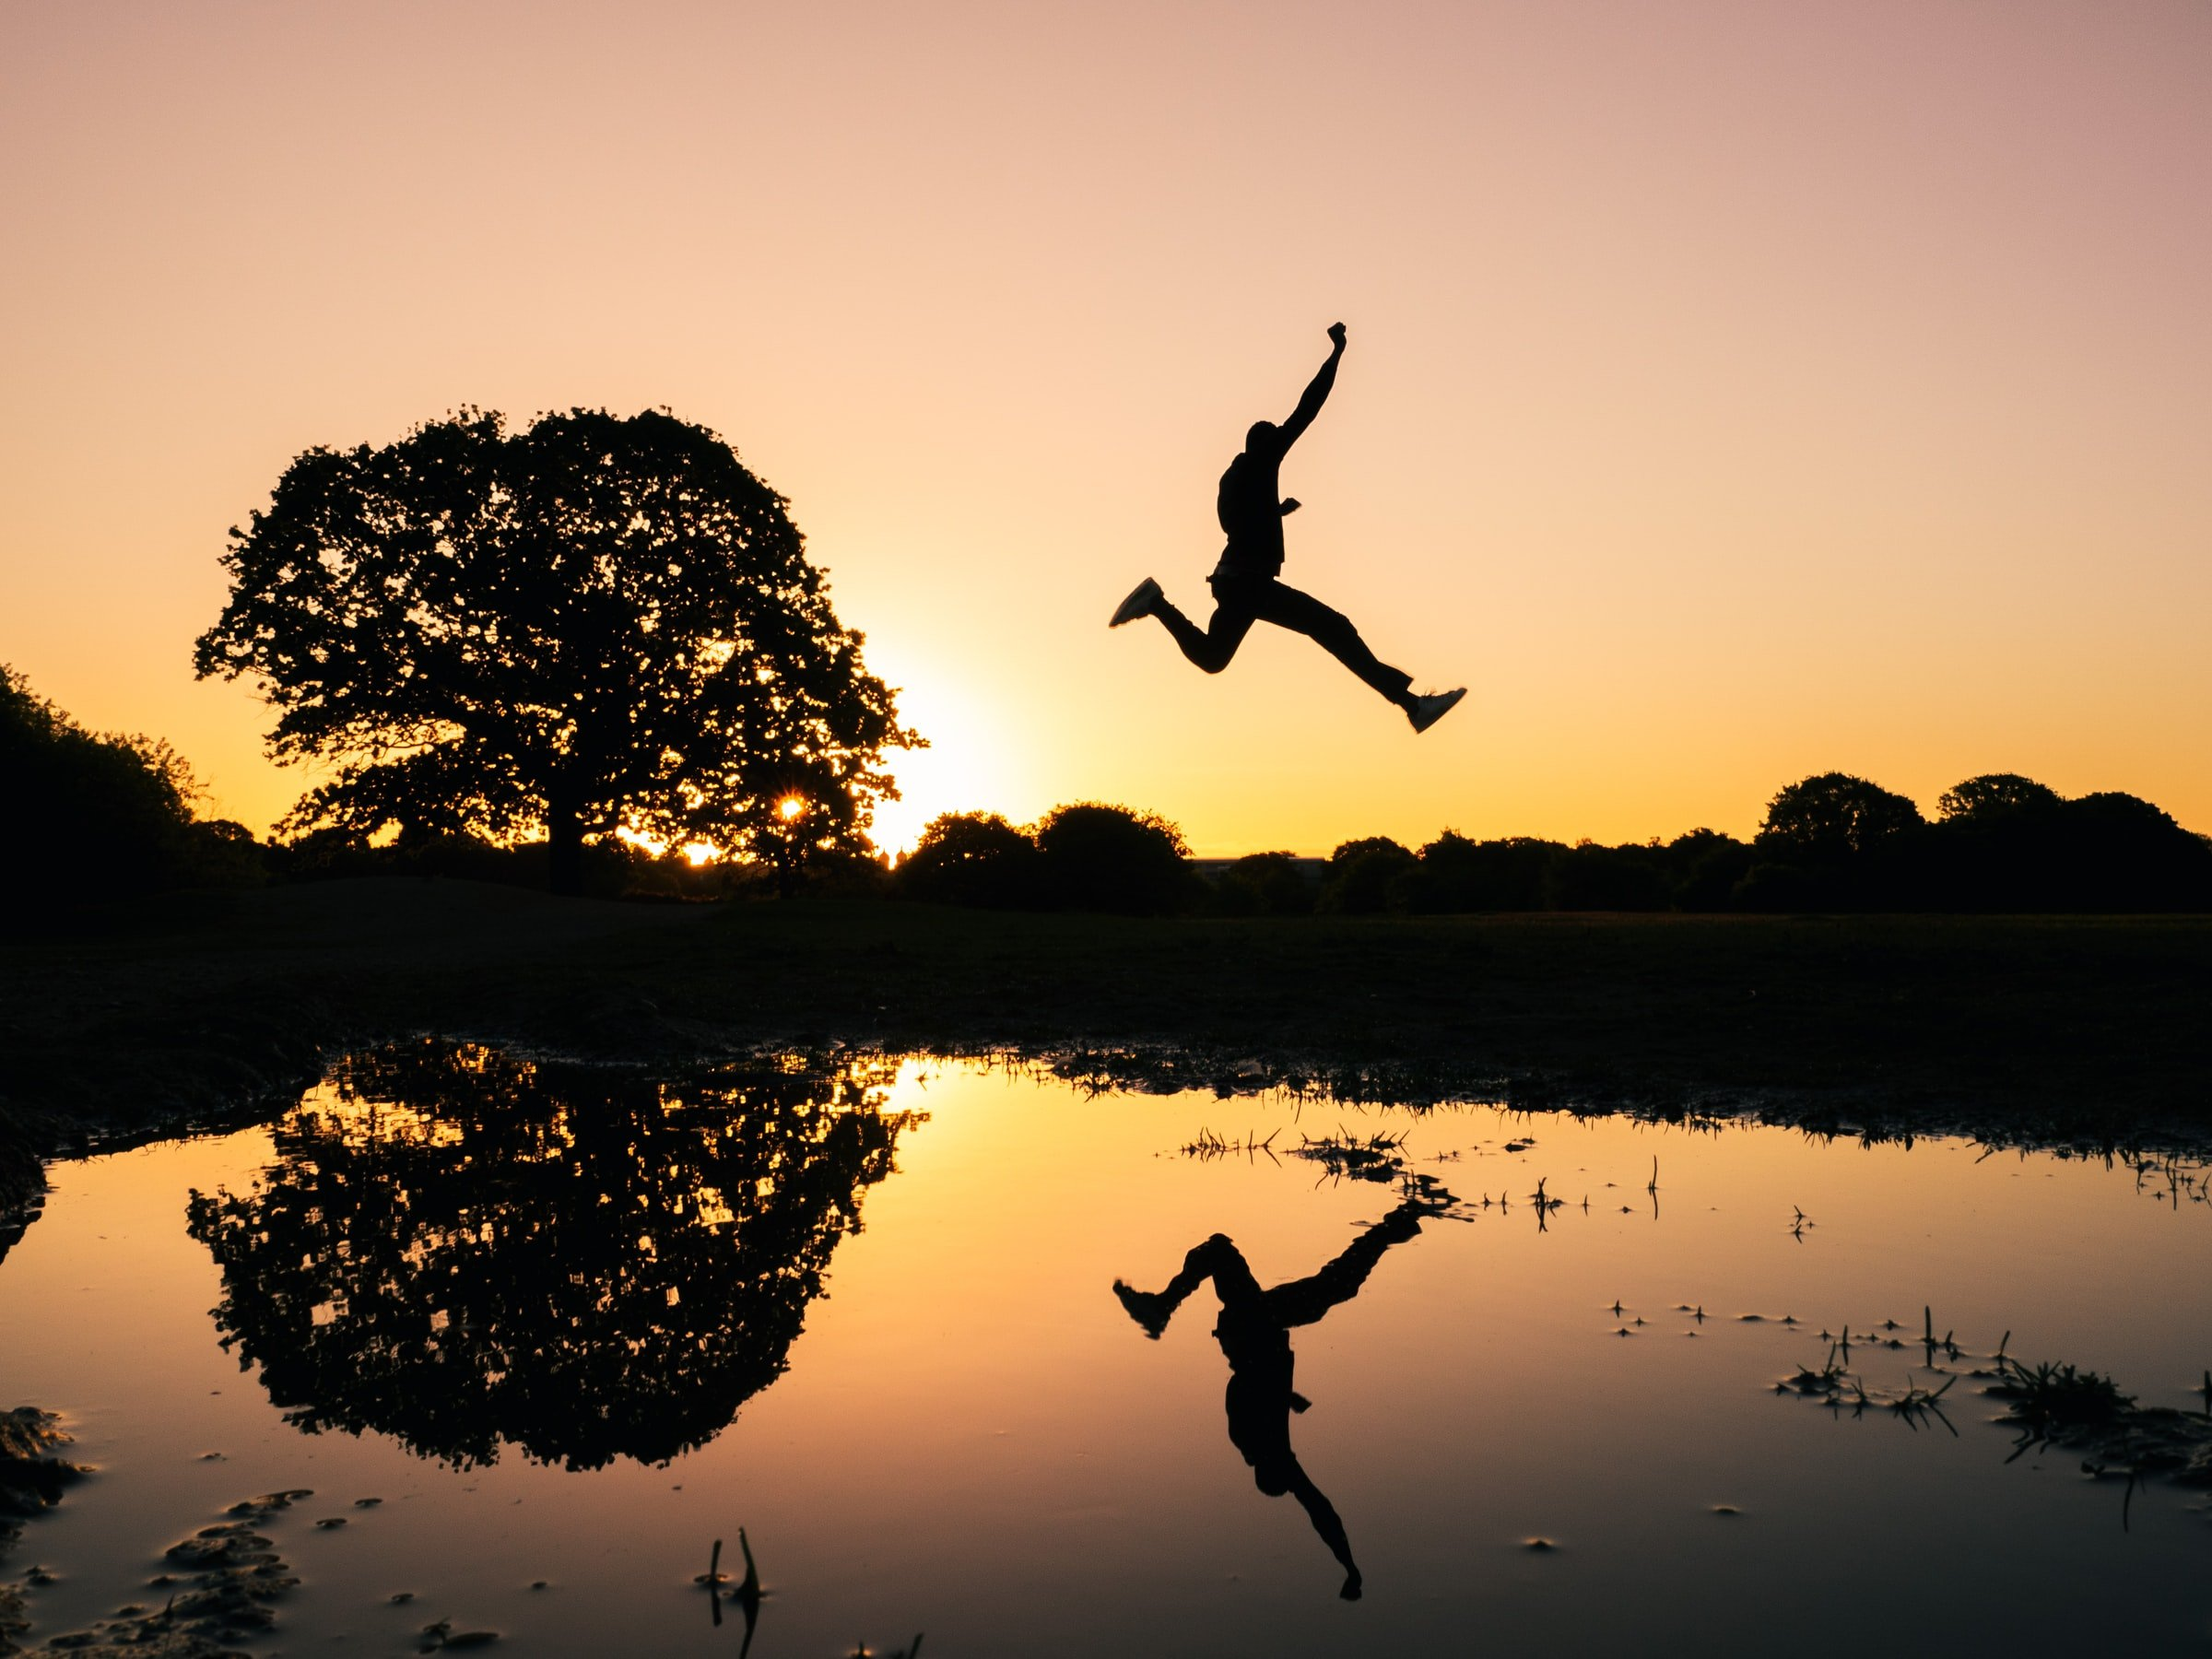 man jumping with reflection